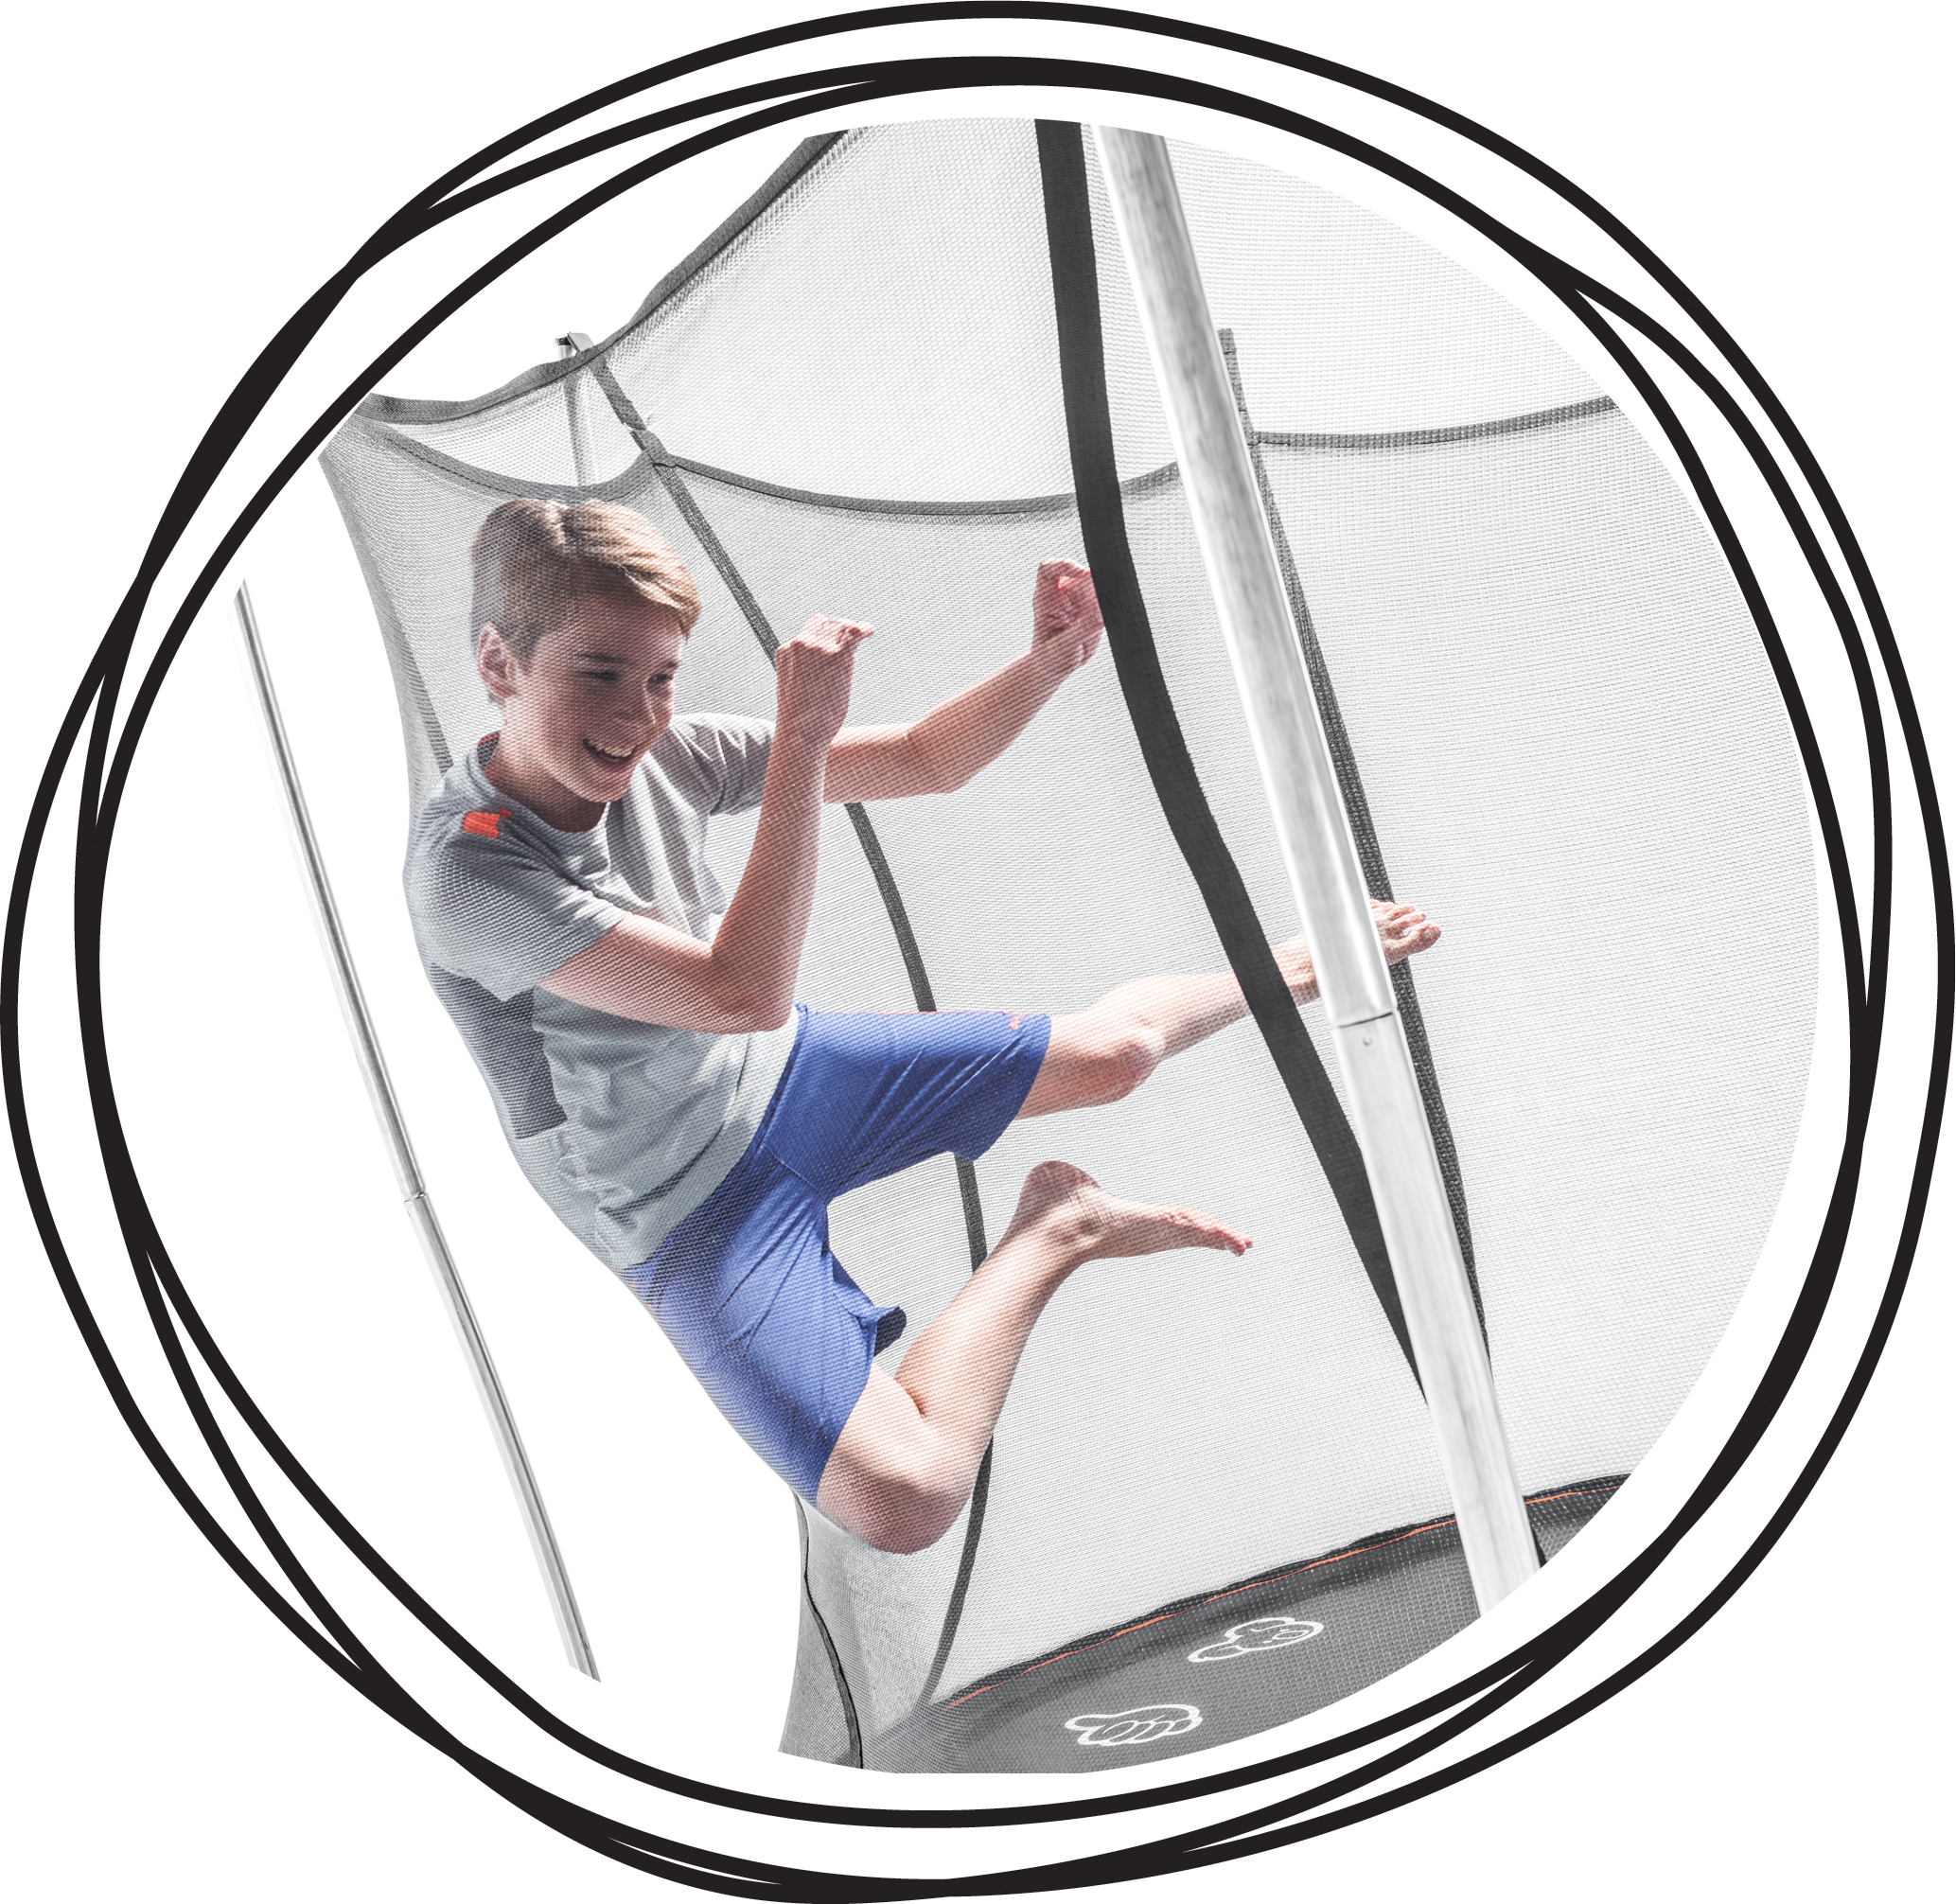 TRAMPOLINES - VULY *FLY HIGH SALE* - Inc + FREE Shade Cover + FREE BBall Set + FREE Aust Wide Delivery + FREE PERTH Assembly - SALE ENDS 7/7/20